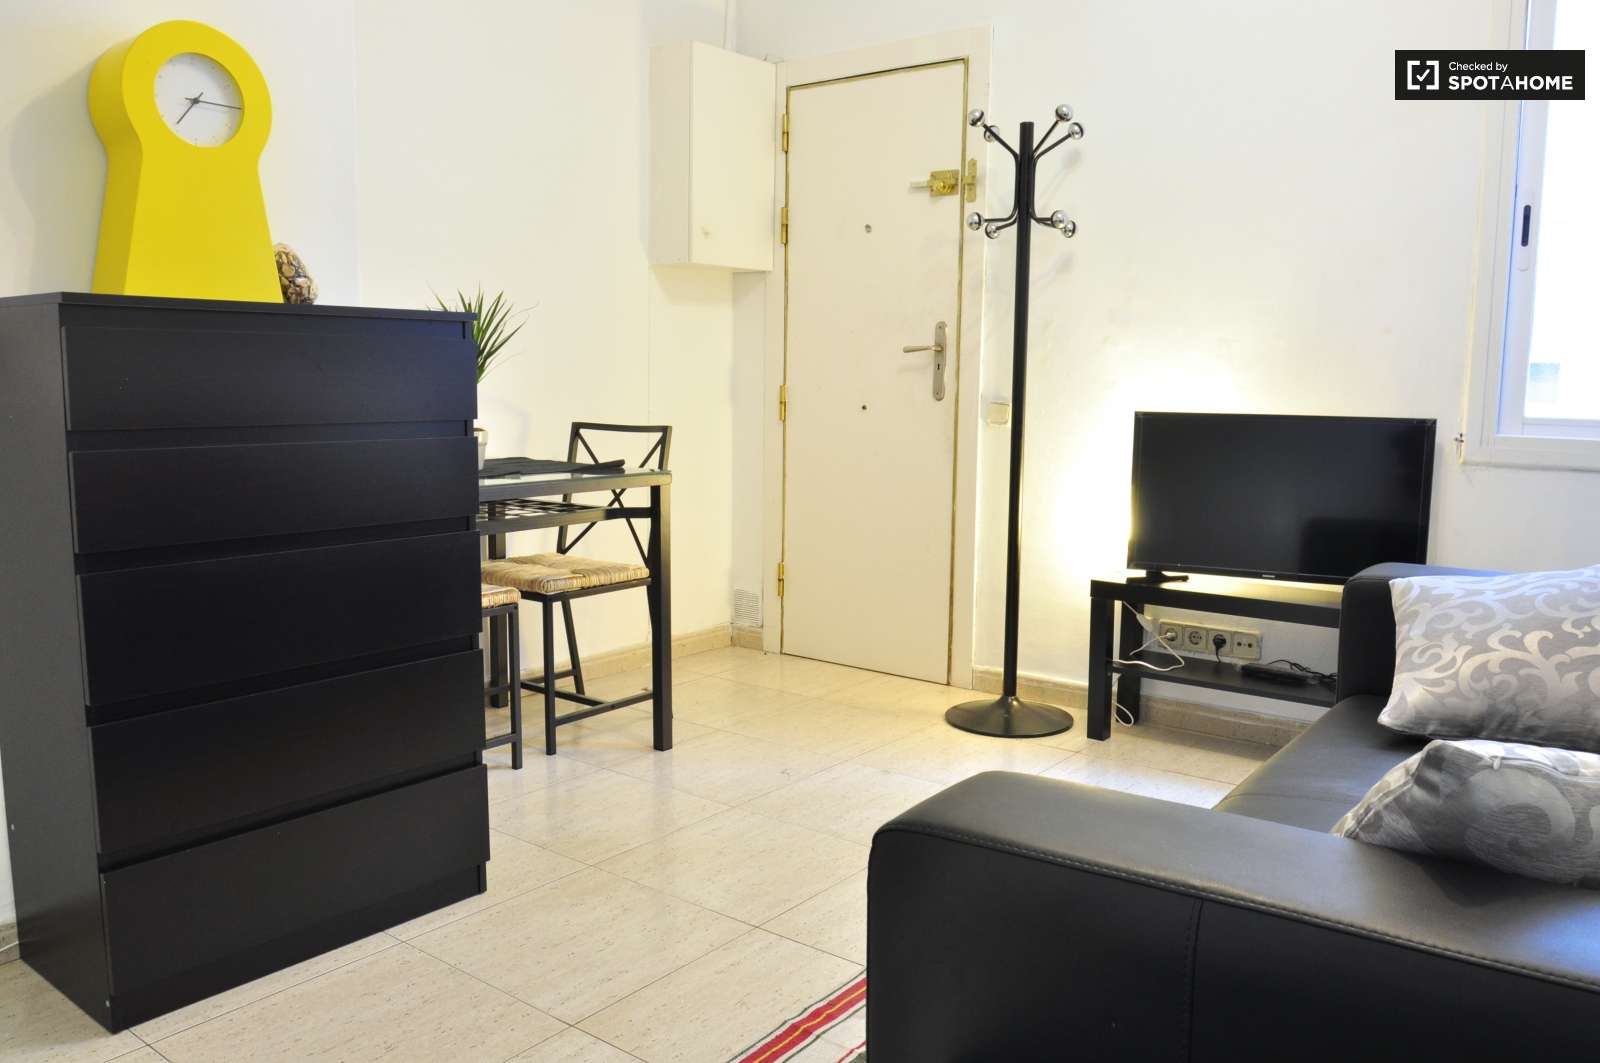 43 M2 2 Bedroom Apartment For Rent In Nou Barris Barcelona Ref  # Muebles Nou Barris